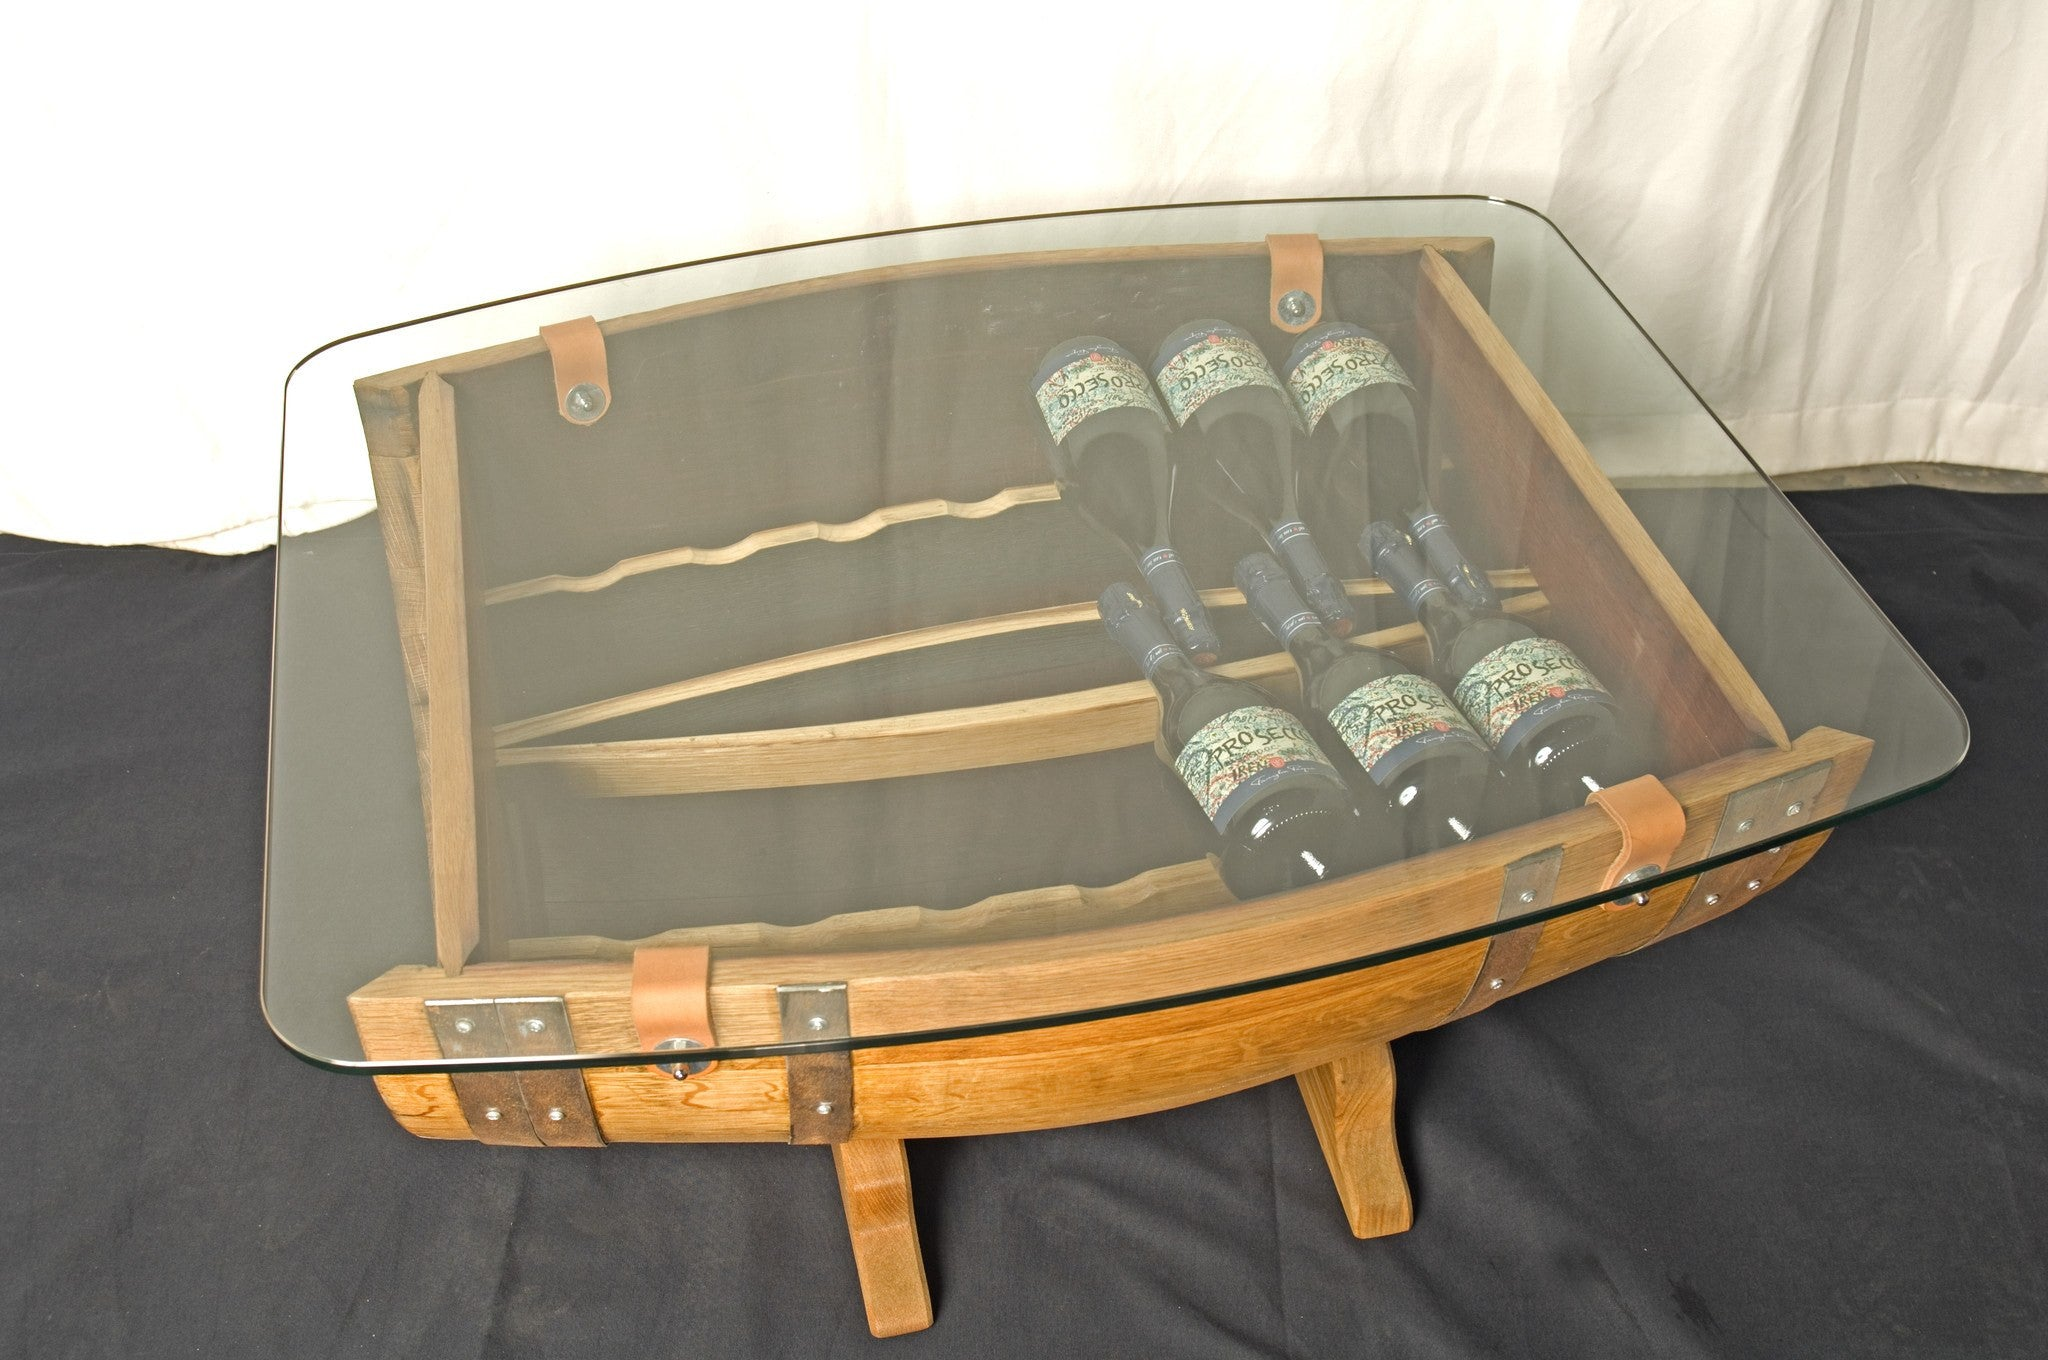 The Griffiths ½ Barrel Coffee Table Wine Rack 14 Bottle The